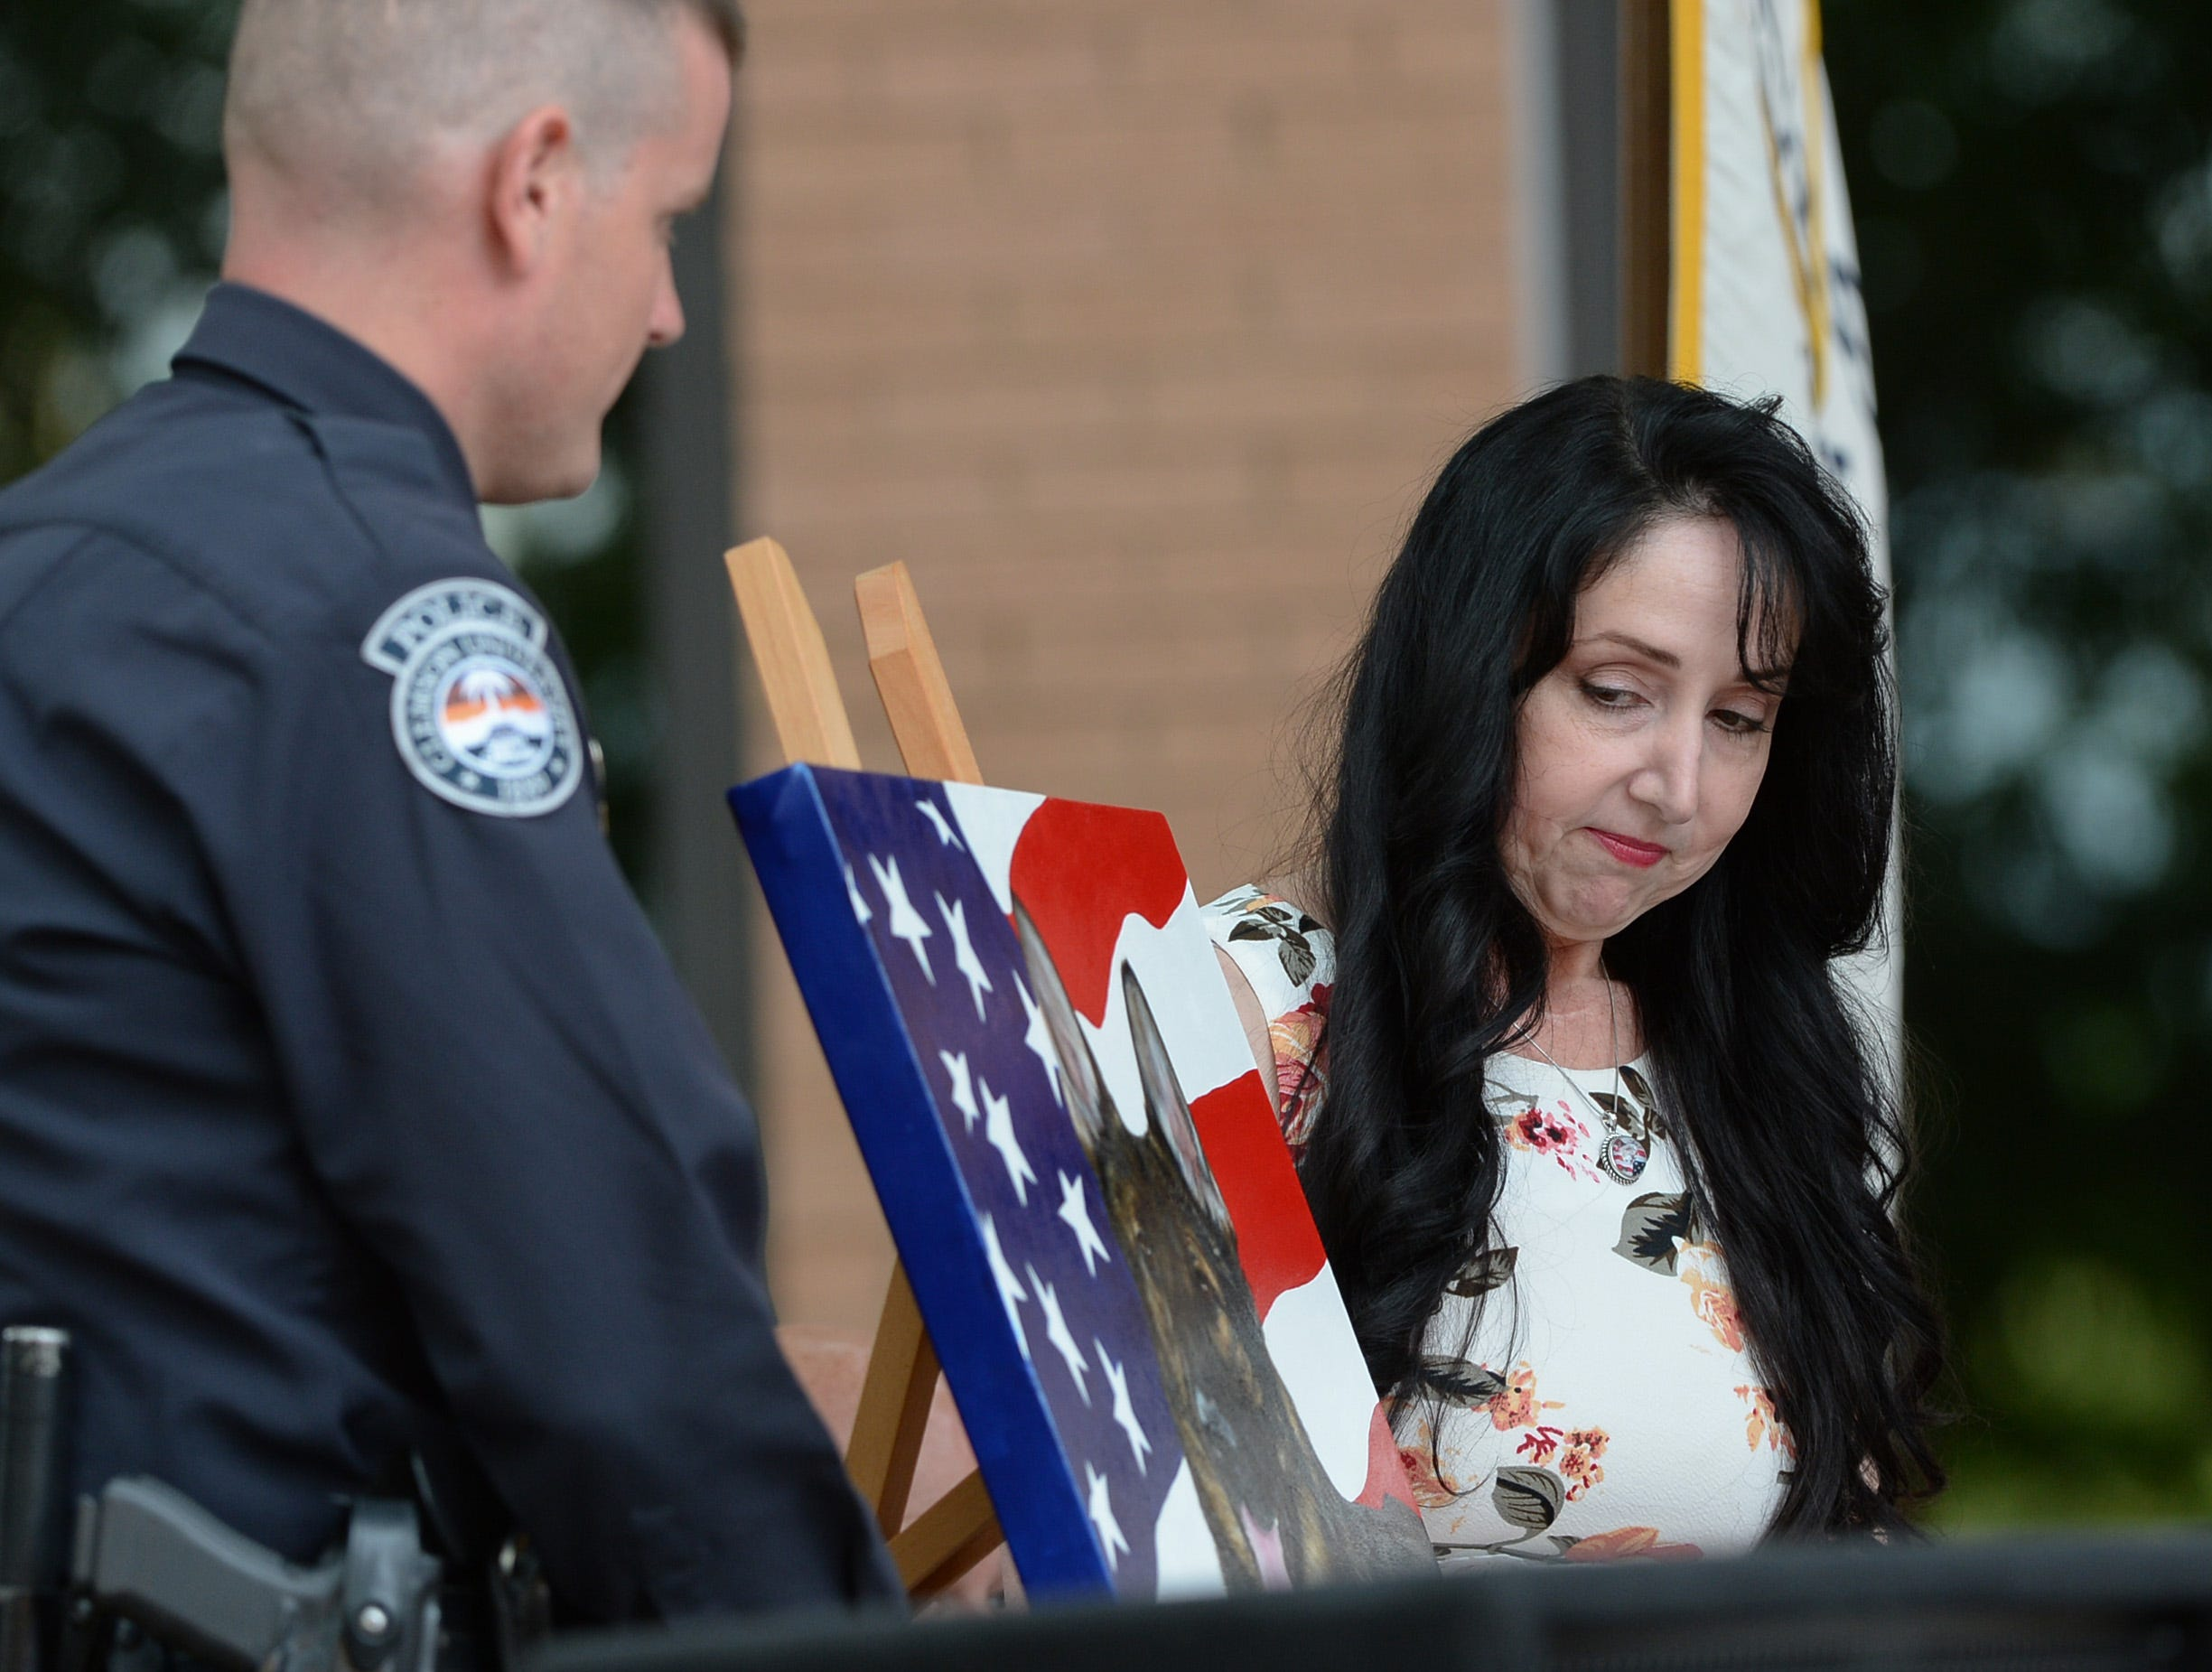 Chip Welborn, left, 2nd Vice President FOP Lodge 10, stands near artist Loreena Pantaleone, of Pennsylvania, who presented Brandon Surratt a painting of Hyco, during the 2019 Peace Officer Memorial Service Wednesday May 15, 2019, in front of the Anderson County courthouse. People attended to help honor the lives of officers lost in the line of duty. Surratt, a former Anderson County Sheriff Deputy who lost his K-9 Hyco in the line of duty in 2015, spoke about serving as an officer.